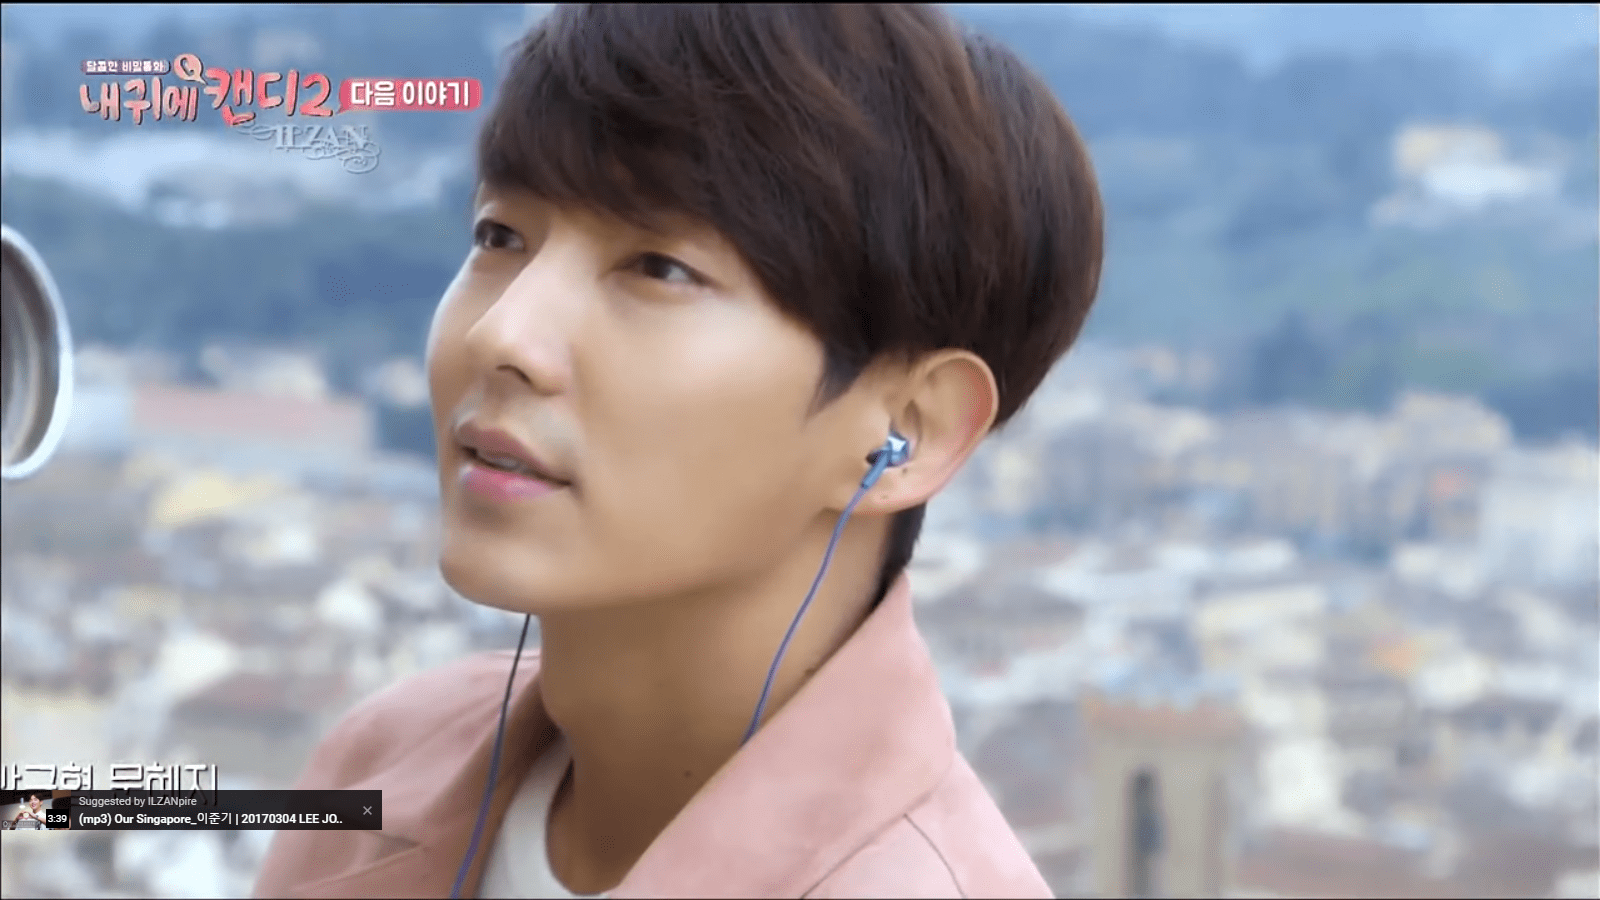 """WATCH: Lee Joon Gi Gets Ready For """"Date"""" On """"My Ear's Candy"""" Preview"""